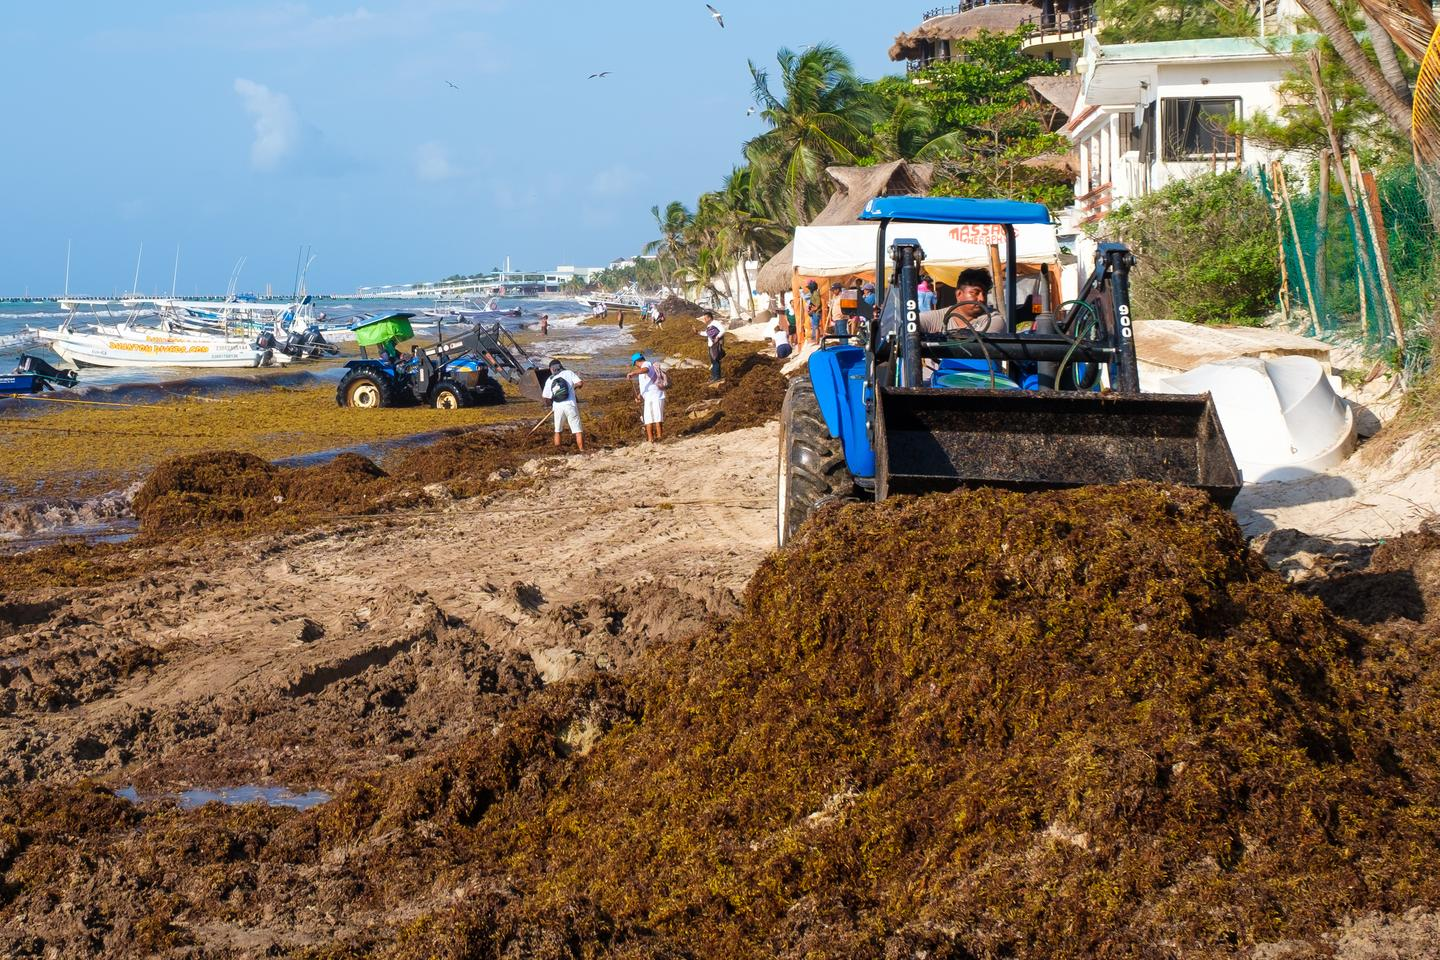 Workers remove Sargassum seaweed from the beach in Playa del Carmen, Mexico